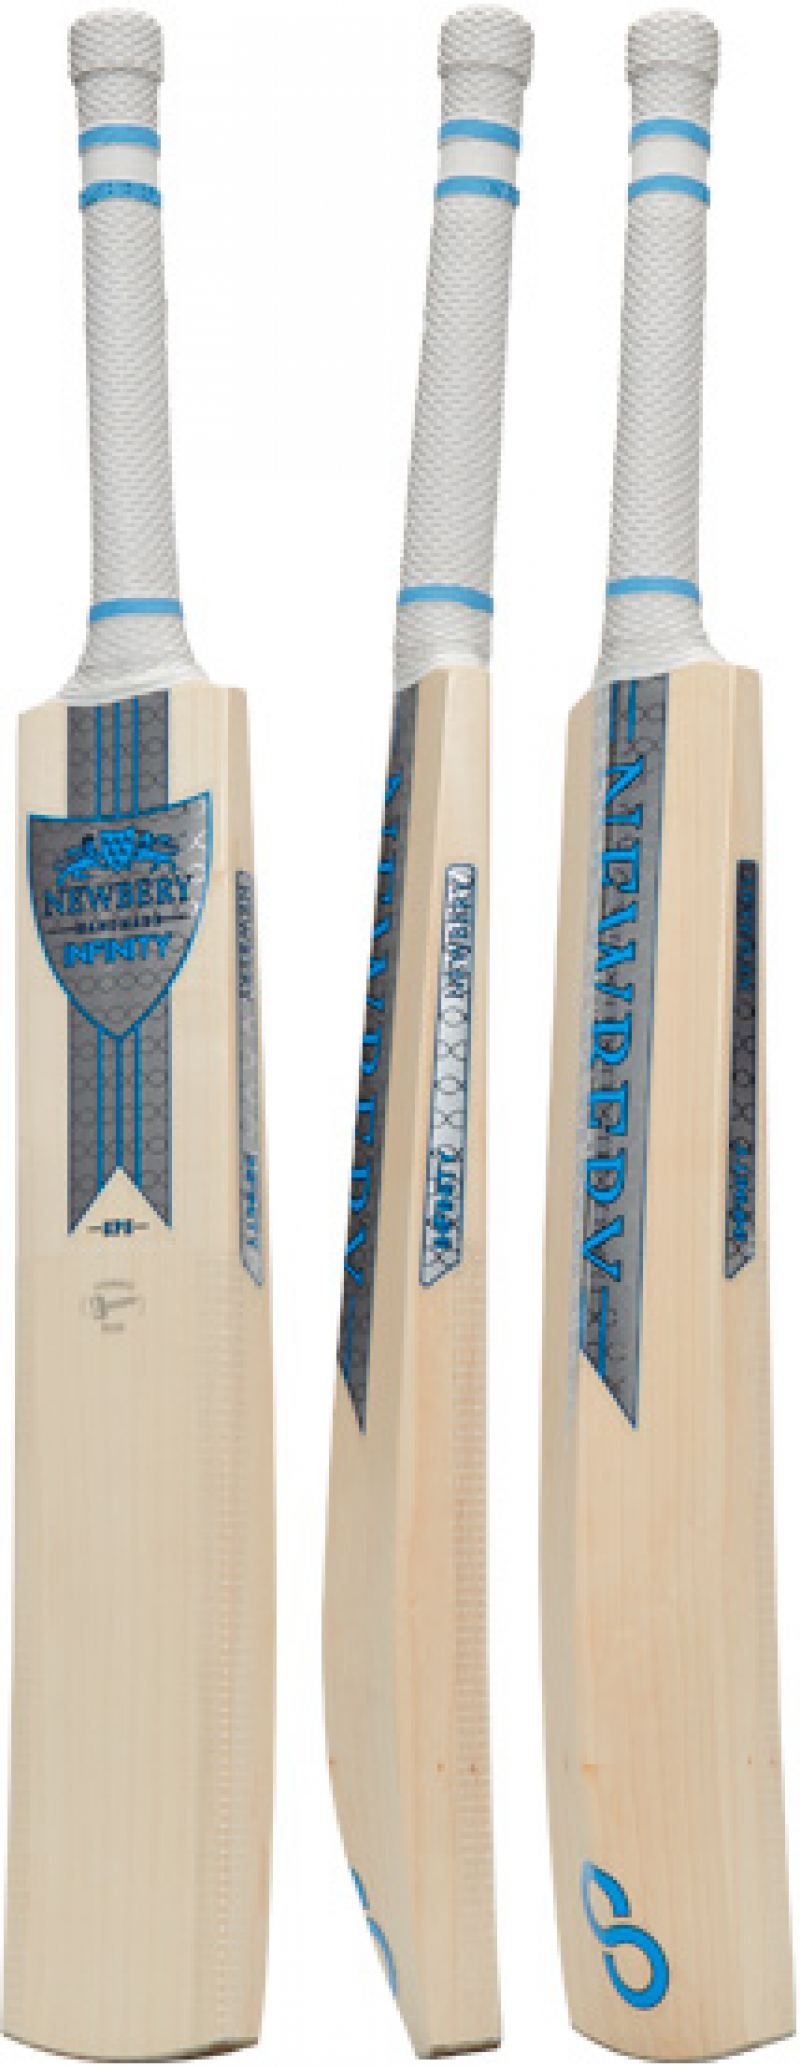 Newbery Infinity SPS Cricket Bat